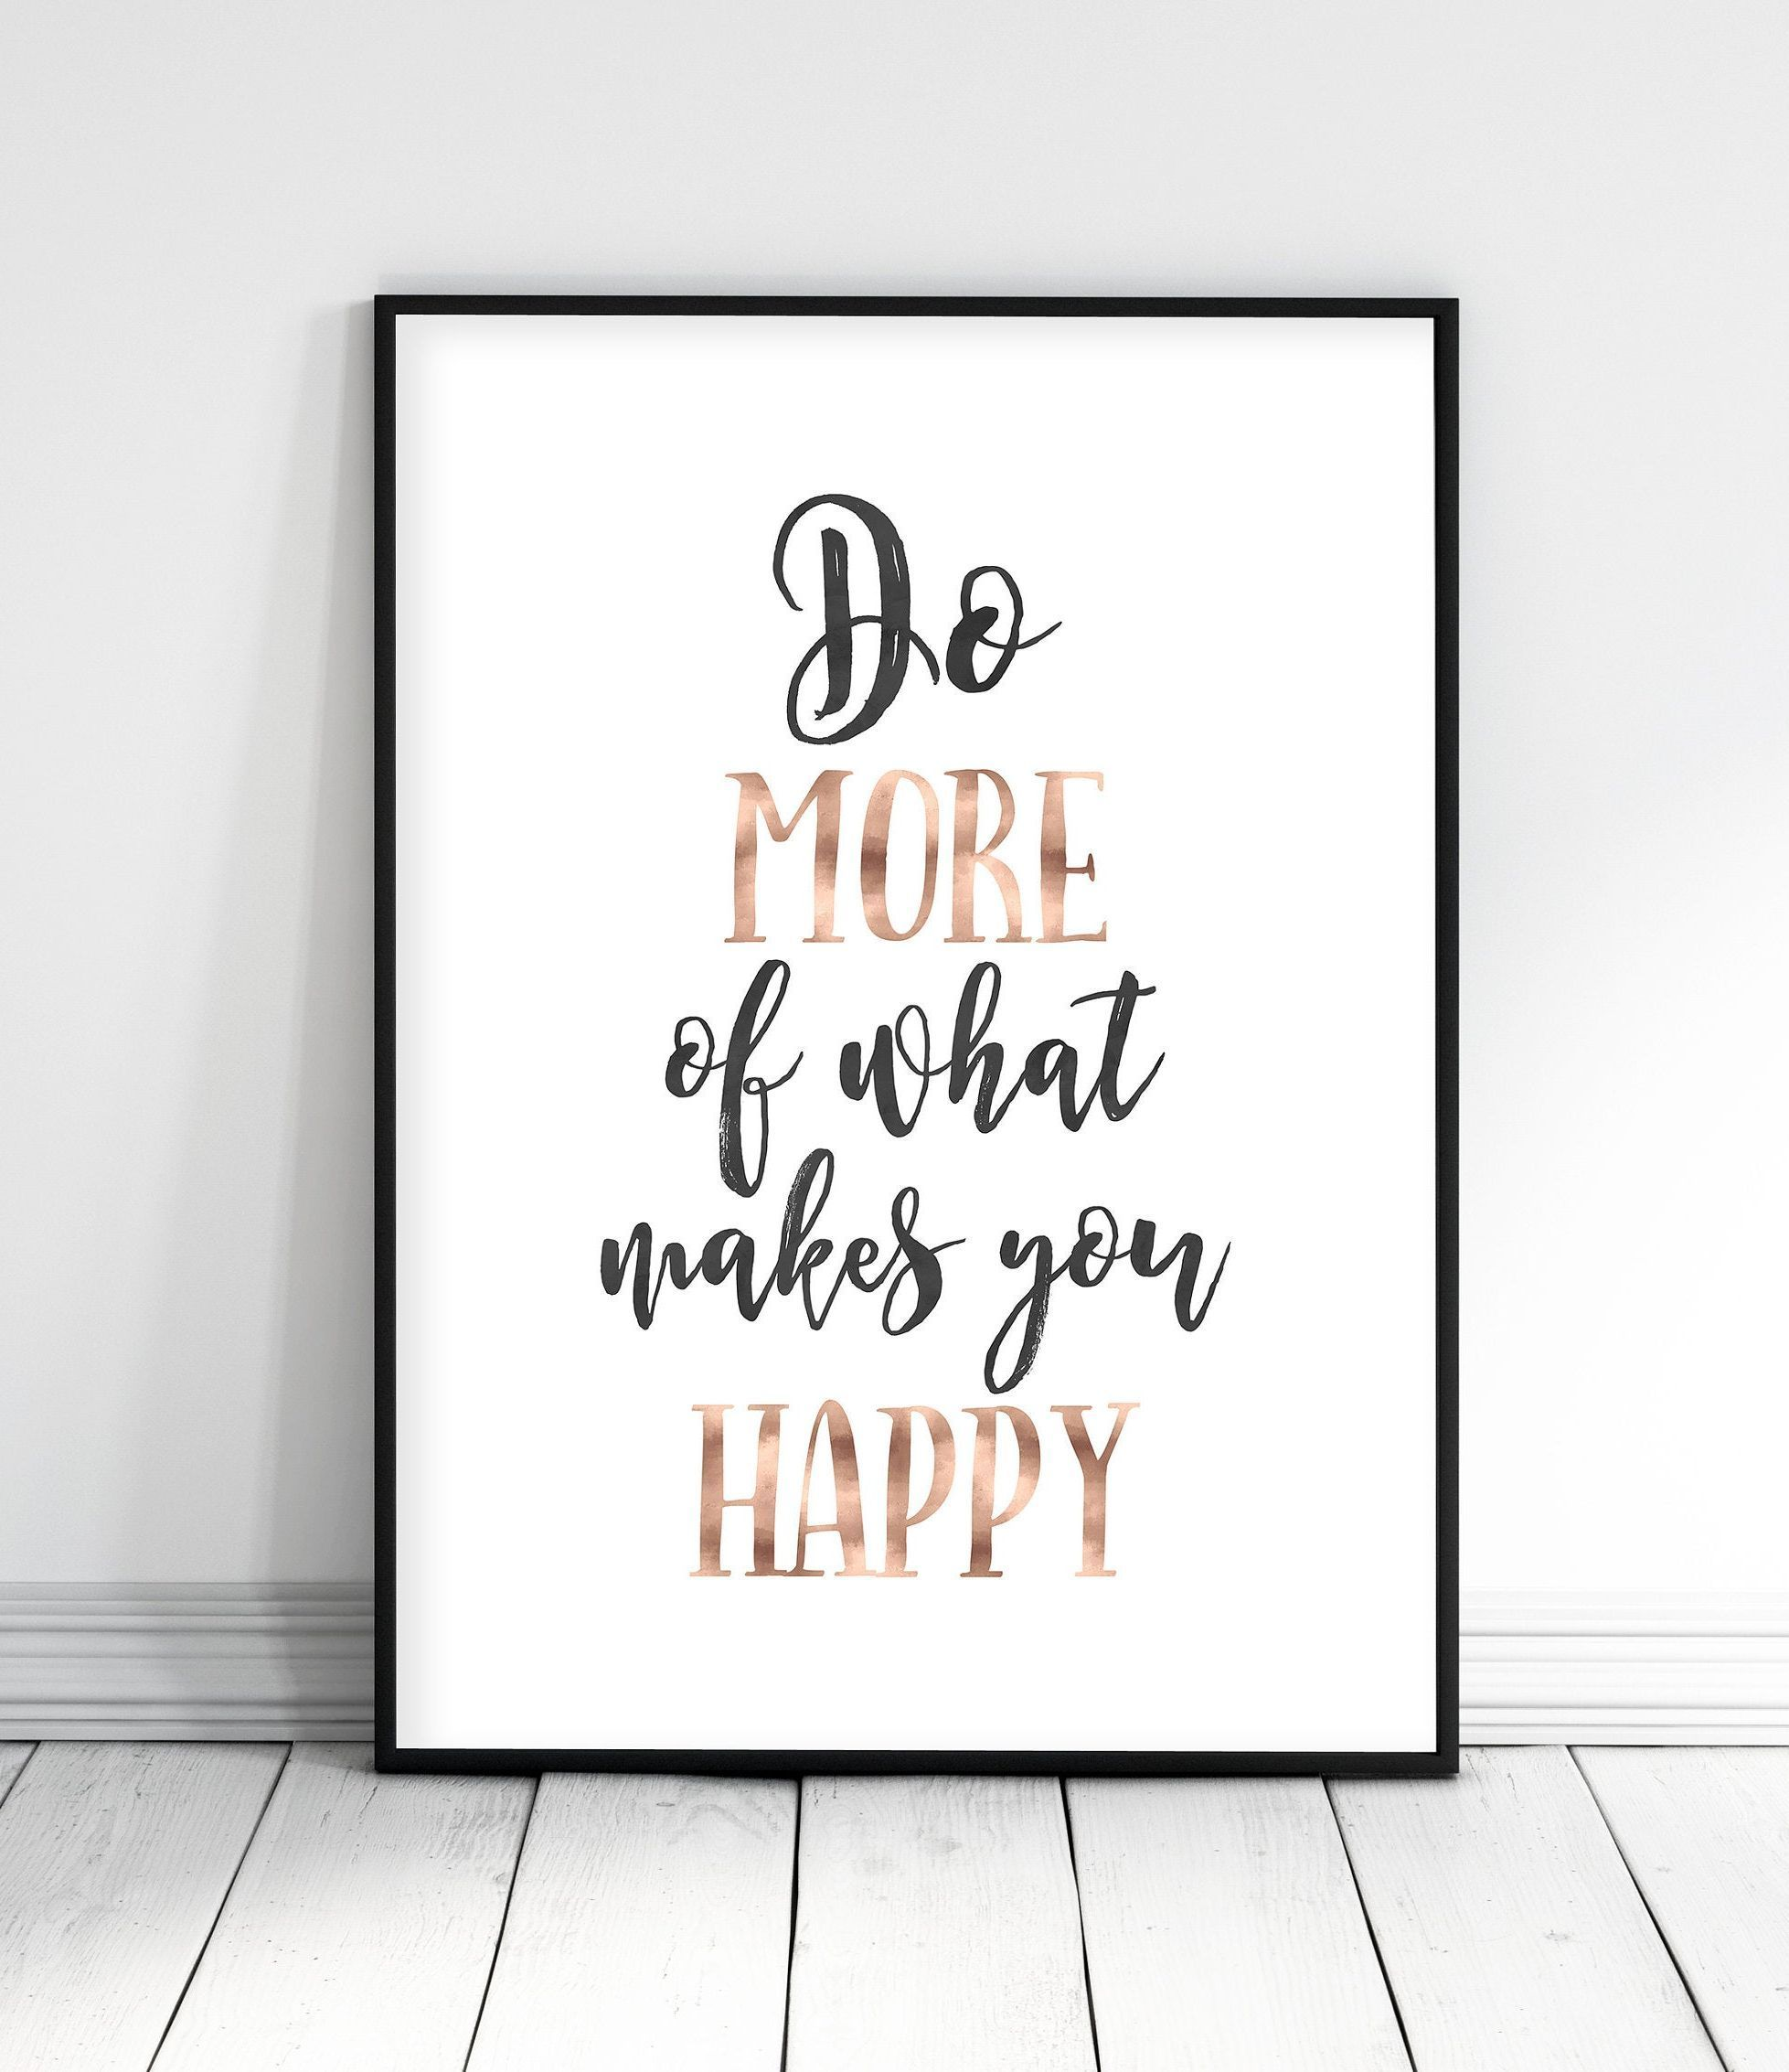 Do More Of What Makes You Happy, Rose Gold Wedding Decor, Inspirational Quotes, Motivational Poster, Gold Dorm Room Decor, Girls Room Decor  Do More Of What Makes You Happy, Rose Gold Wedding Decor by LilaPrints. Inspirational Quotes, Motiv #Decor #dorm #Girls #Gold #happy #inspirational #Motivational #Poster #Quotes #Room #Rosé #Wedding